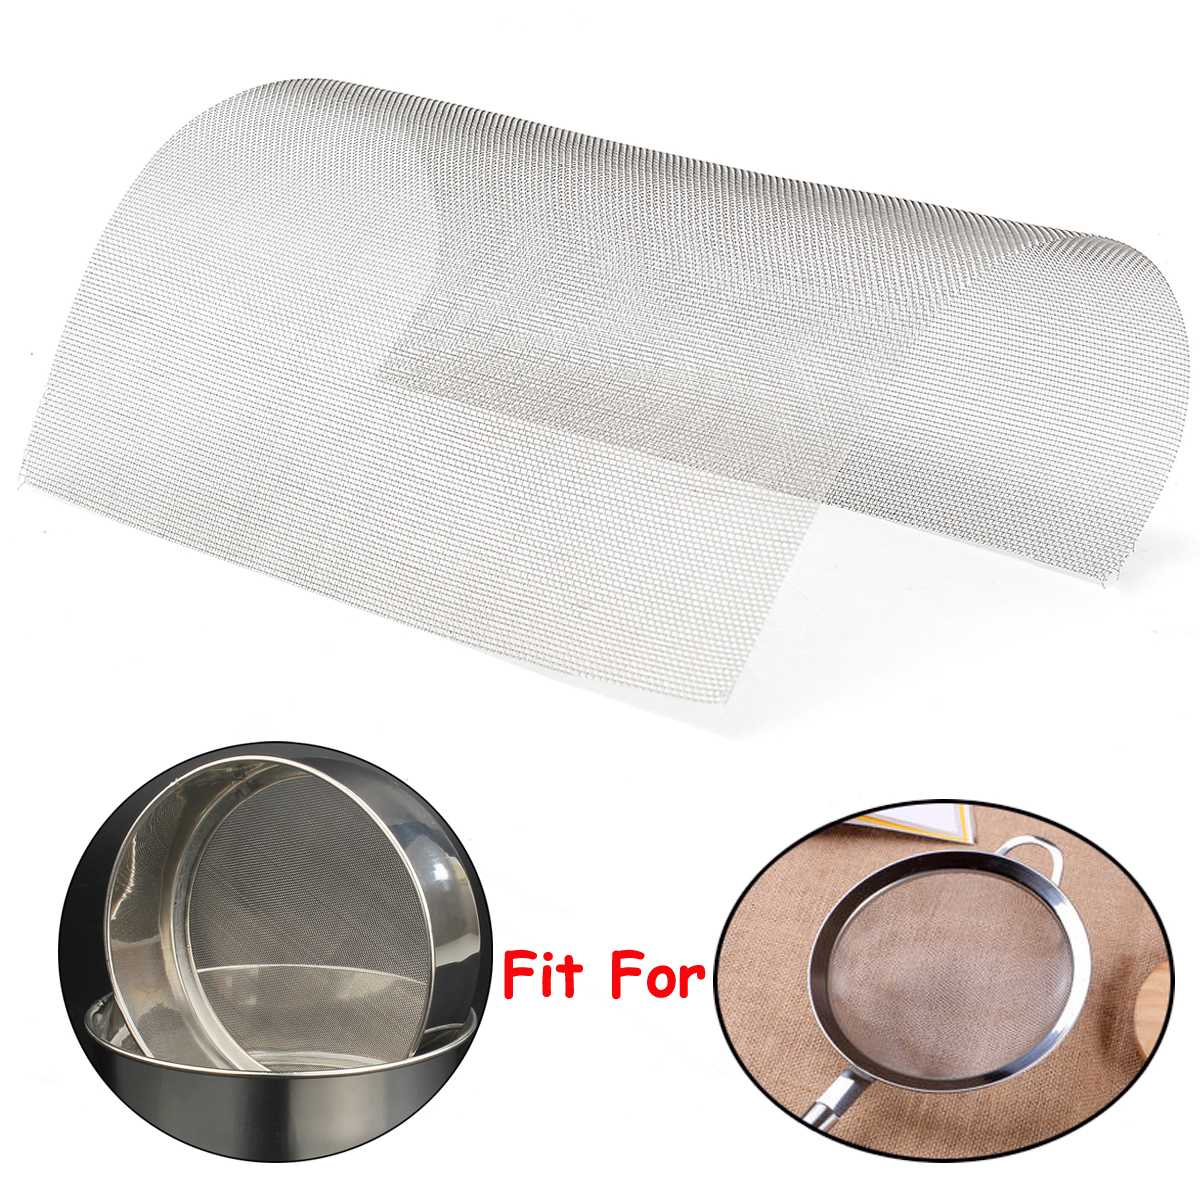 30x30cm Woven Wire 304 Stainless Steel Filtration Grill Sheet Filter 20 Mesh Wire Mesh Cloth Screen